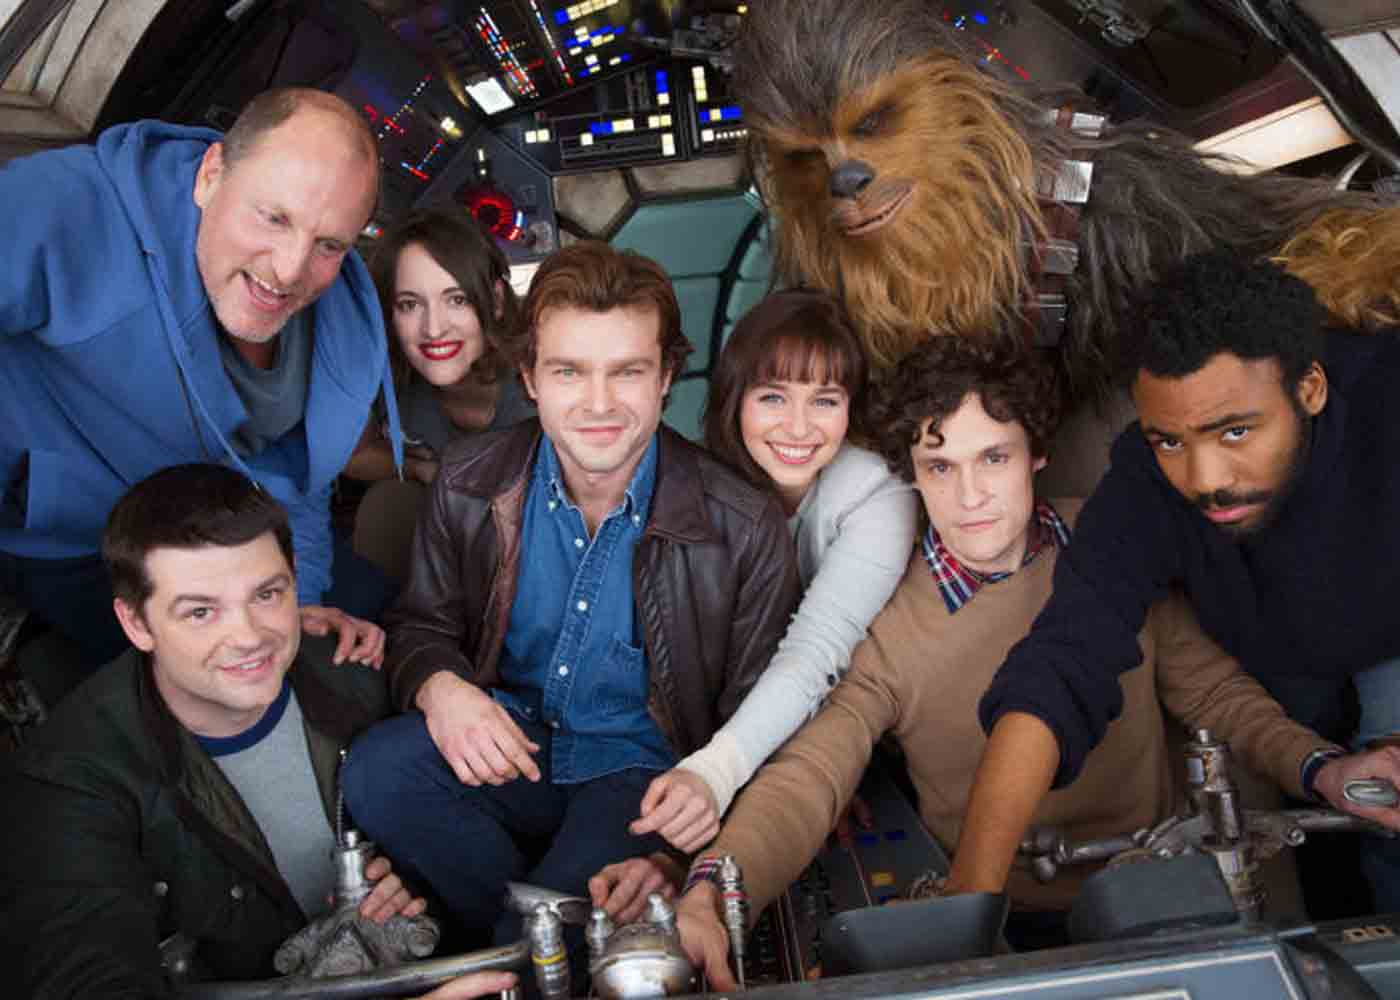 Star Wars Han Solo Film Set Photos Feature Woody Harrelson's Character